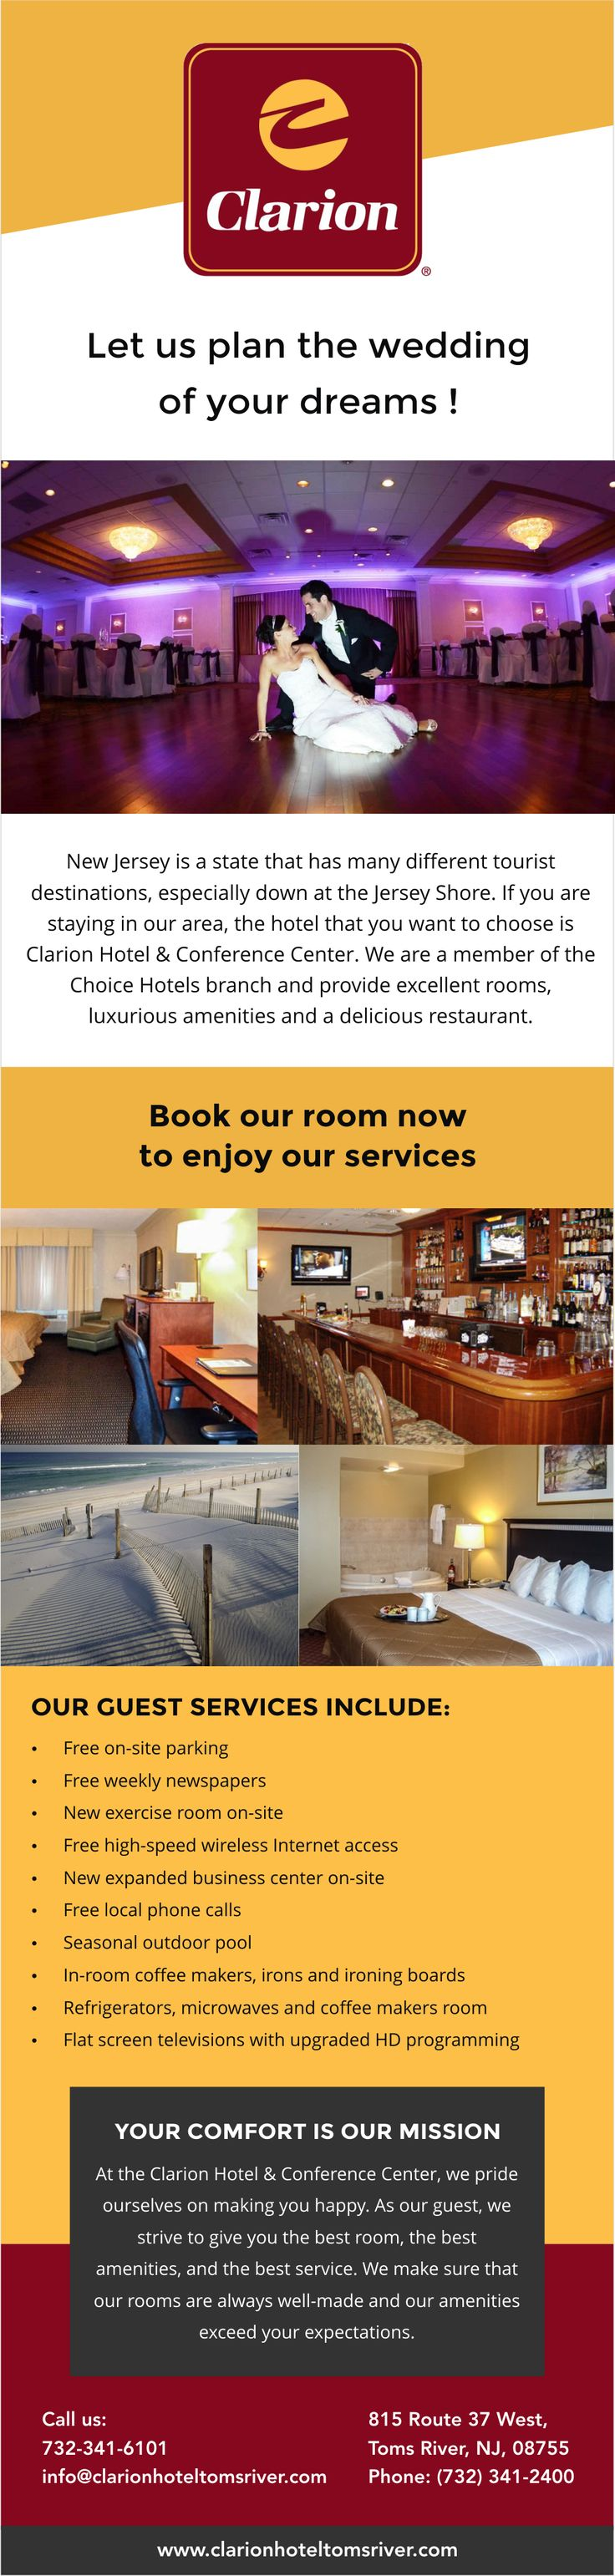 NJ has many different tourist destinations, especially down at the Jersey Shore. If you are staying in our area, the hotel that you want to choose is Clarion Hotel & Conference Center. We are a member of the Choice Hotels branch and provide excellent rooms, luxurious amenities and a delicious restaurant.  We can host your business meeting, corporate meeting, corporate event, or business conference any day of the week in Toms River NJ. Our award winning facility